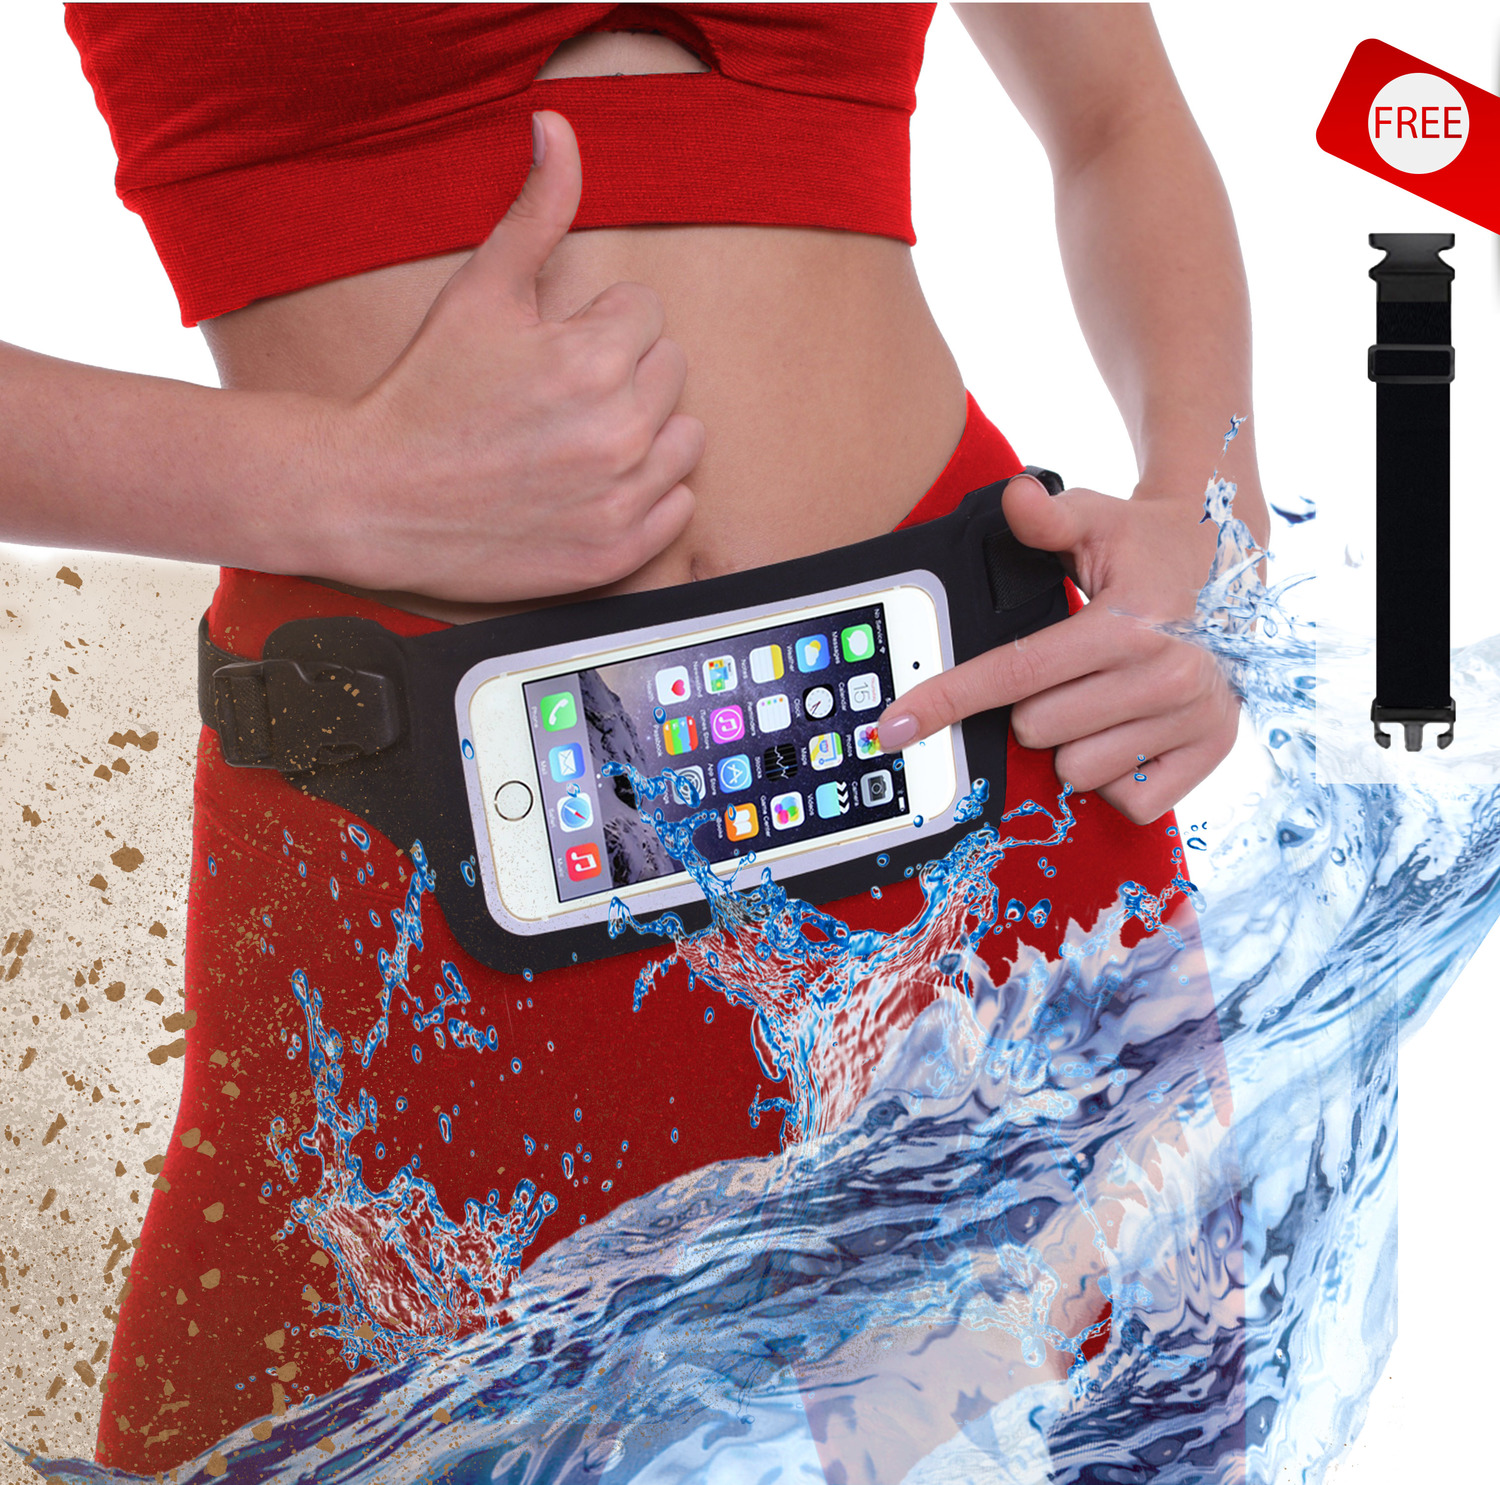 New Waterproof Running Belt Fanny Pack for iPhone 7, X, 8 and Samsung S7/8/9 (Slim Case) - W/Touchscreen Ready Window - IPX8 Rated Submersible Waist Bag for Fitness, Travel, Beach, Kayaking, Swimming and more!